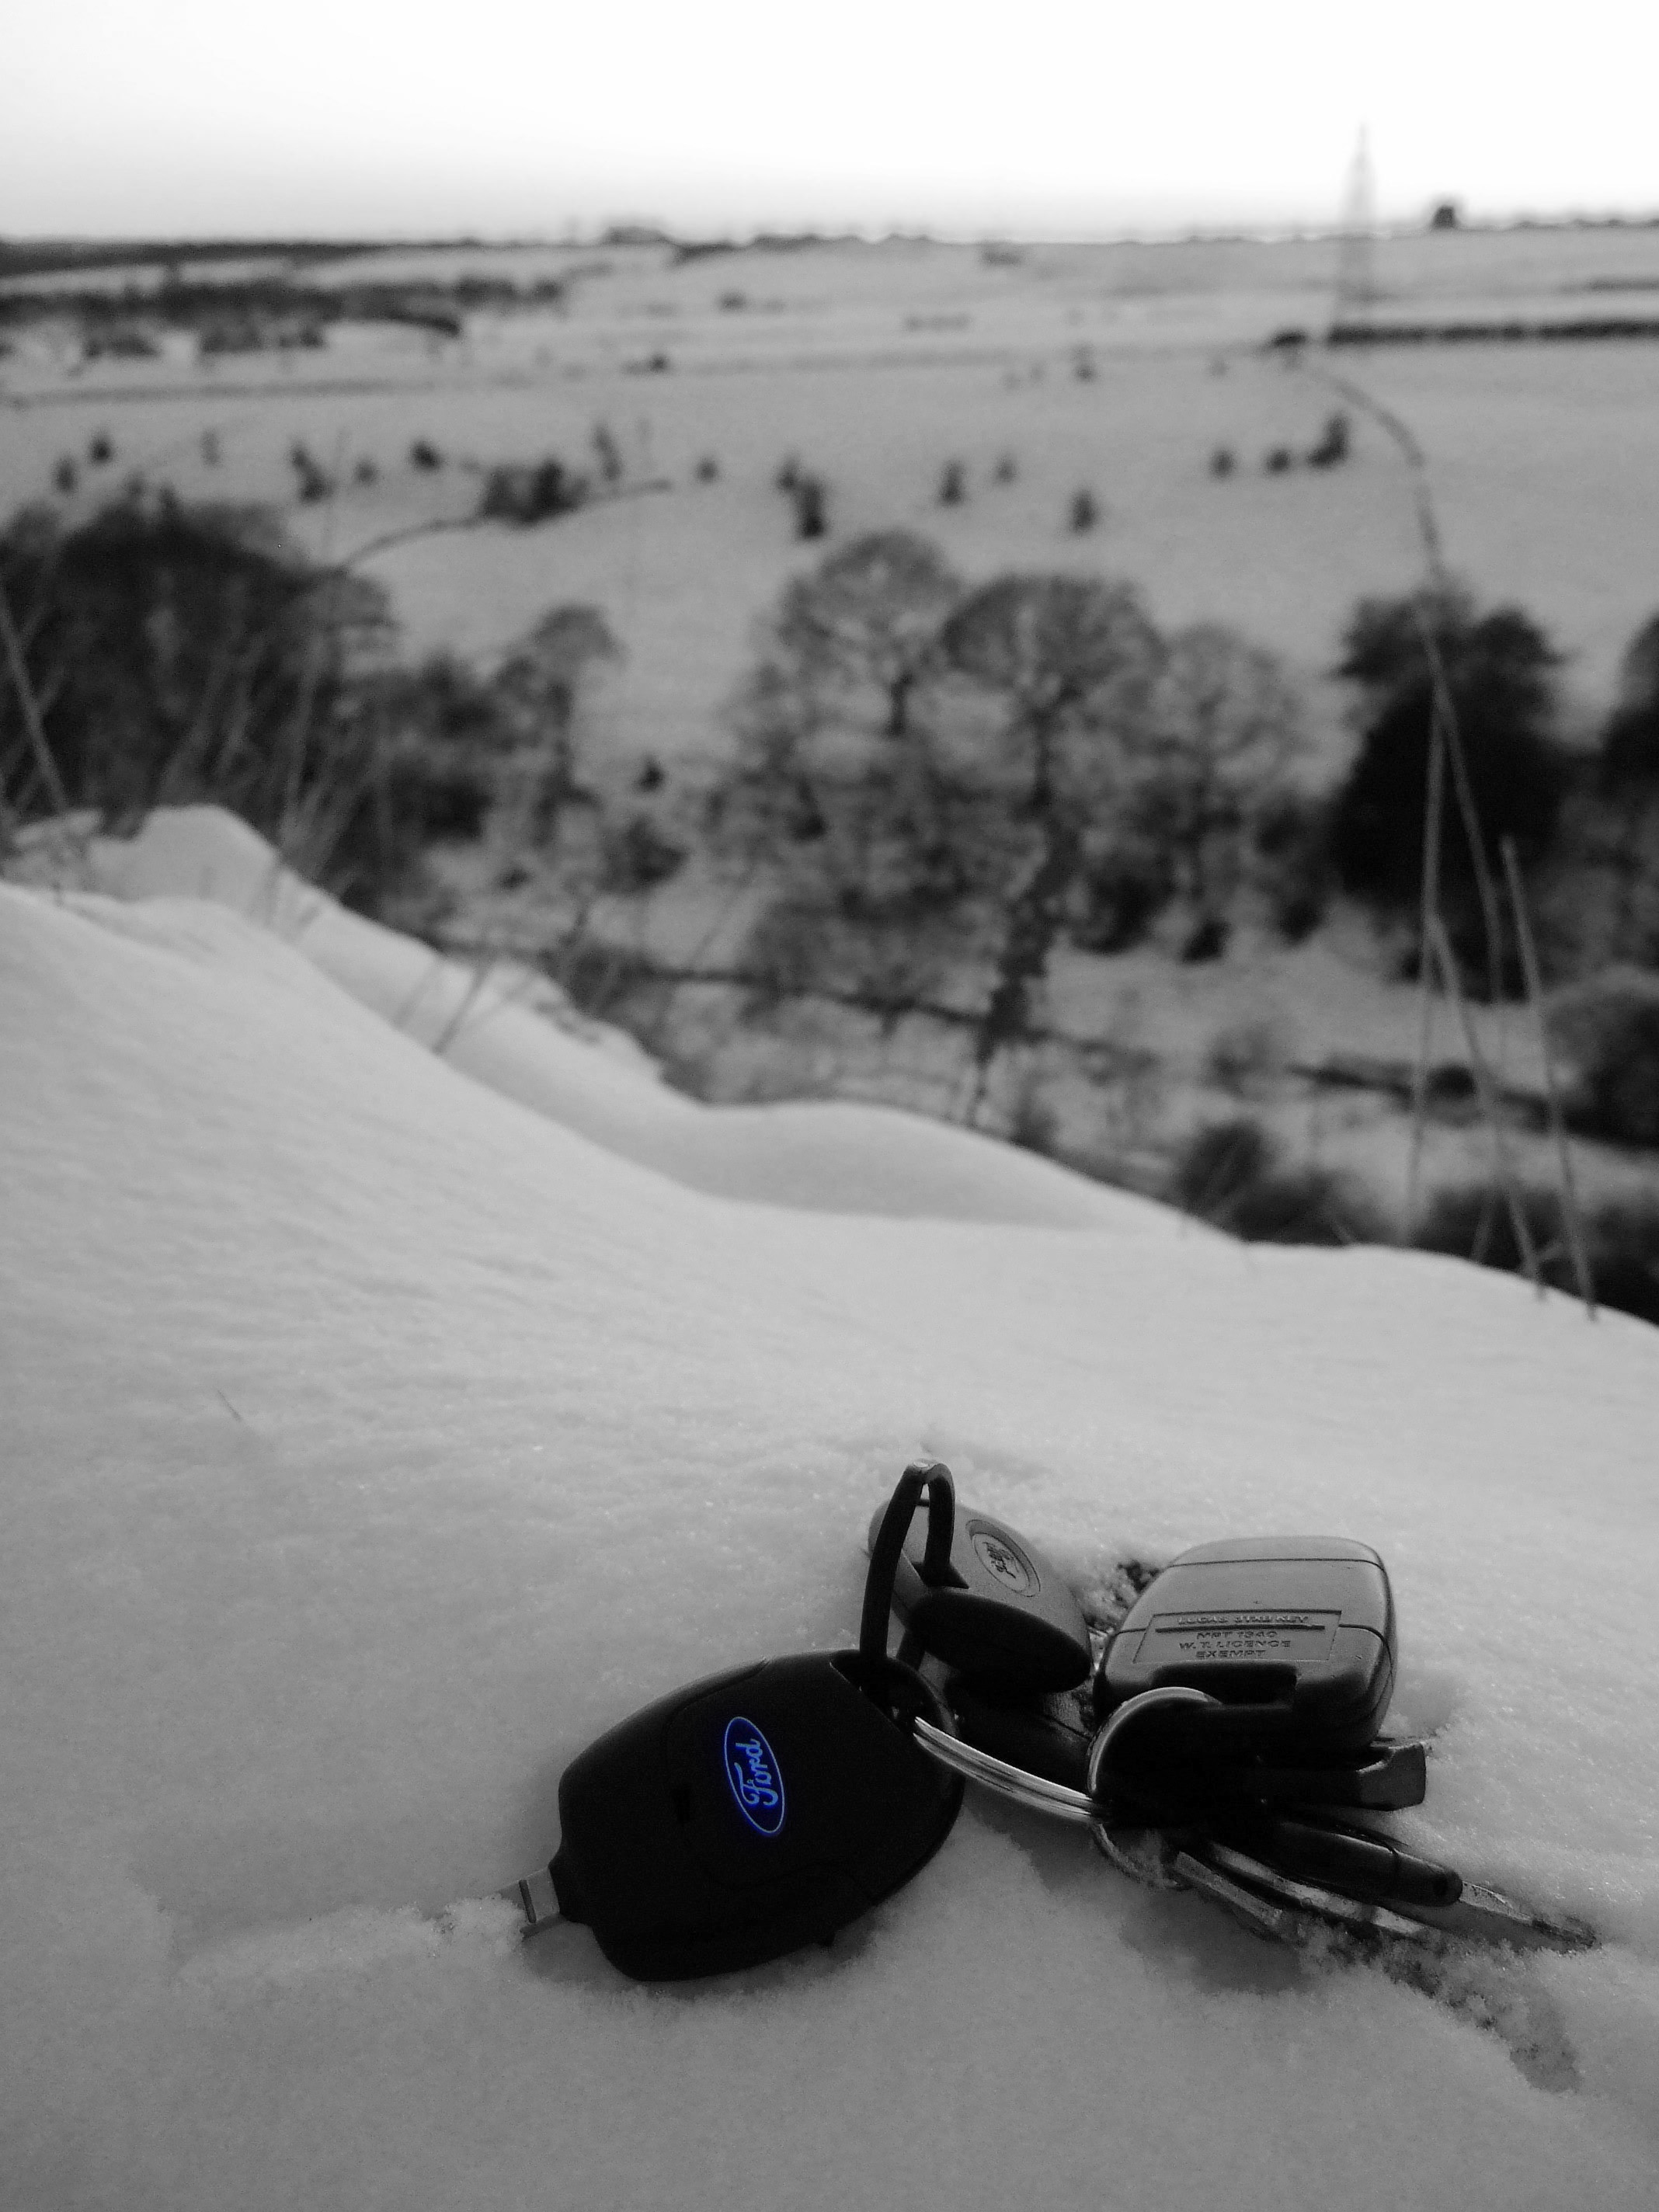 Lost Keys In Snow